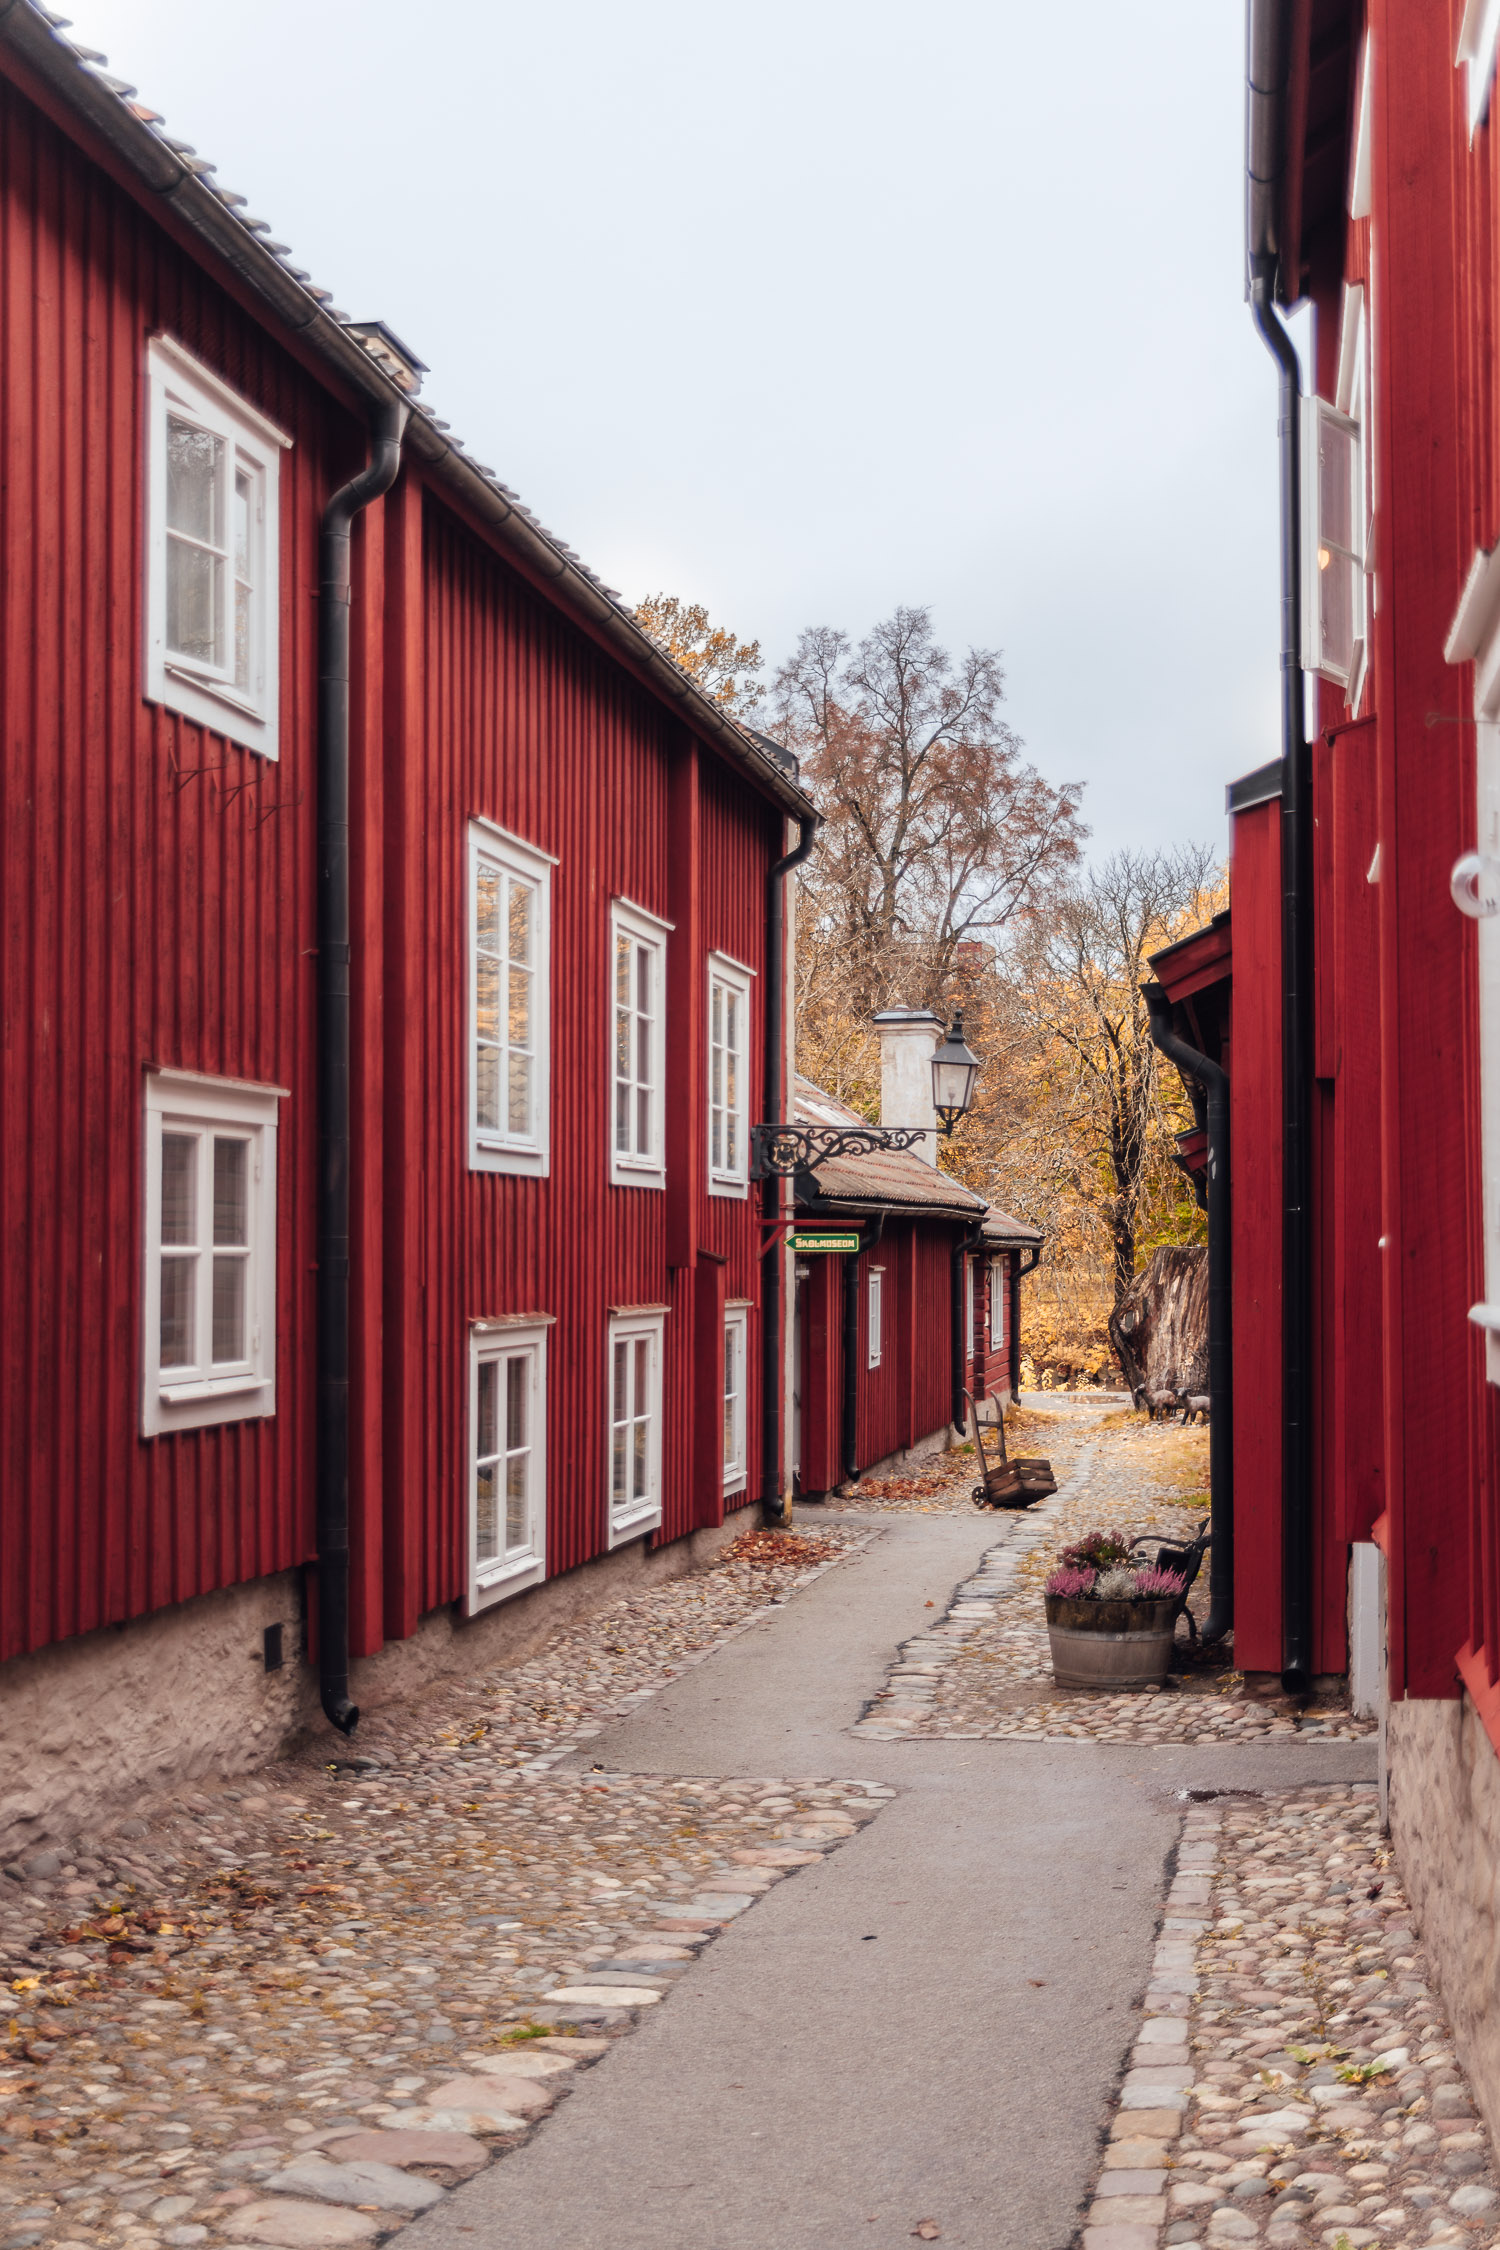 Beautiful street with red buildings in the open-air museum Wadköping, Örebro